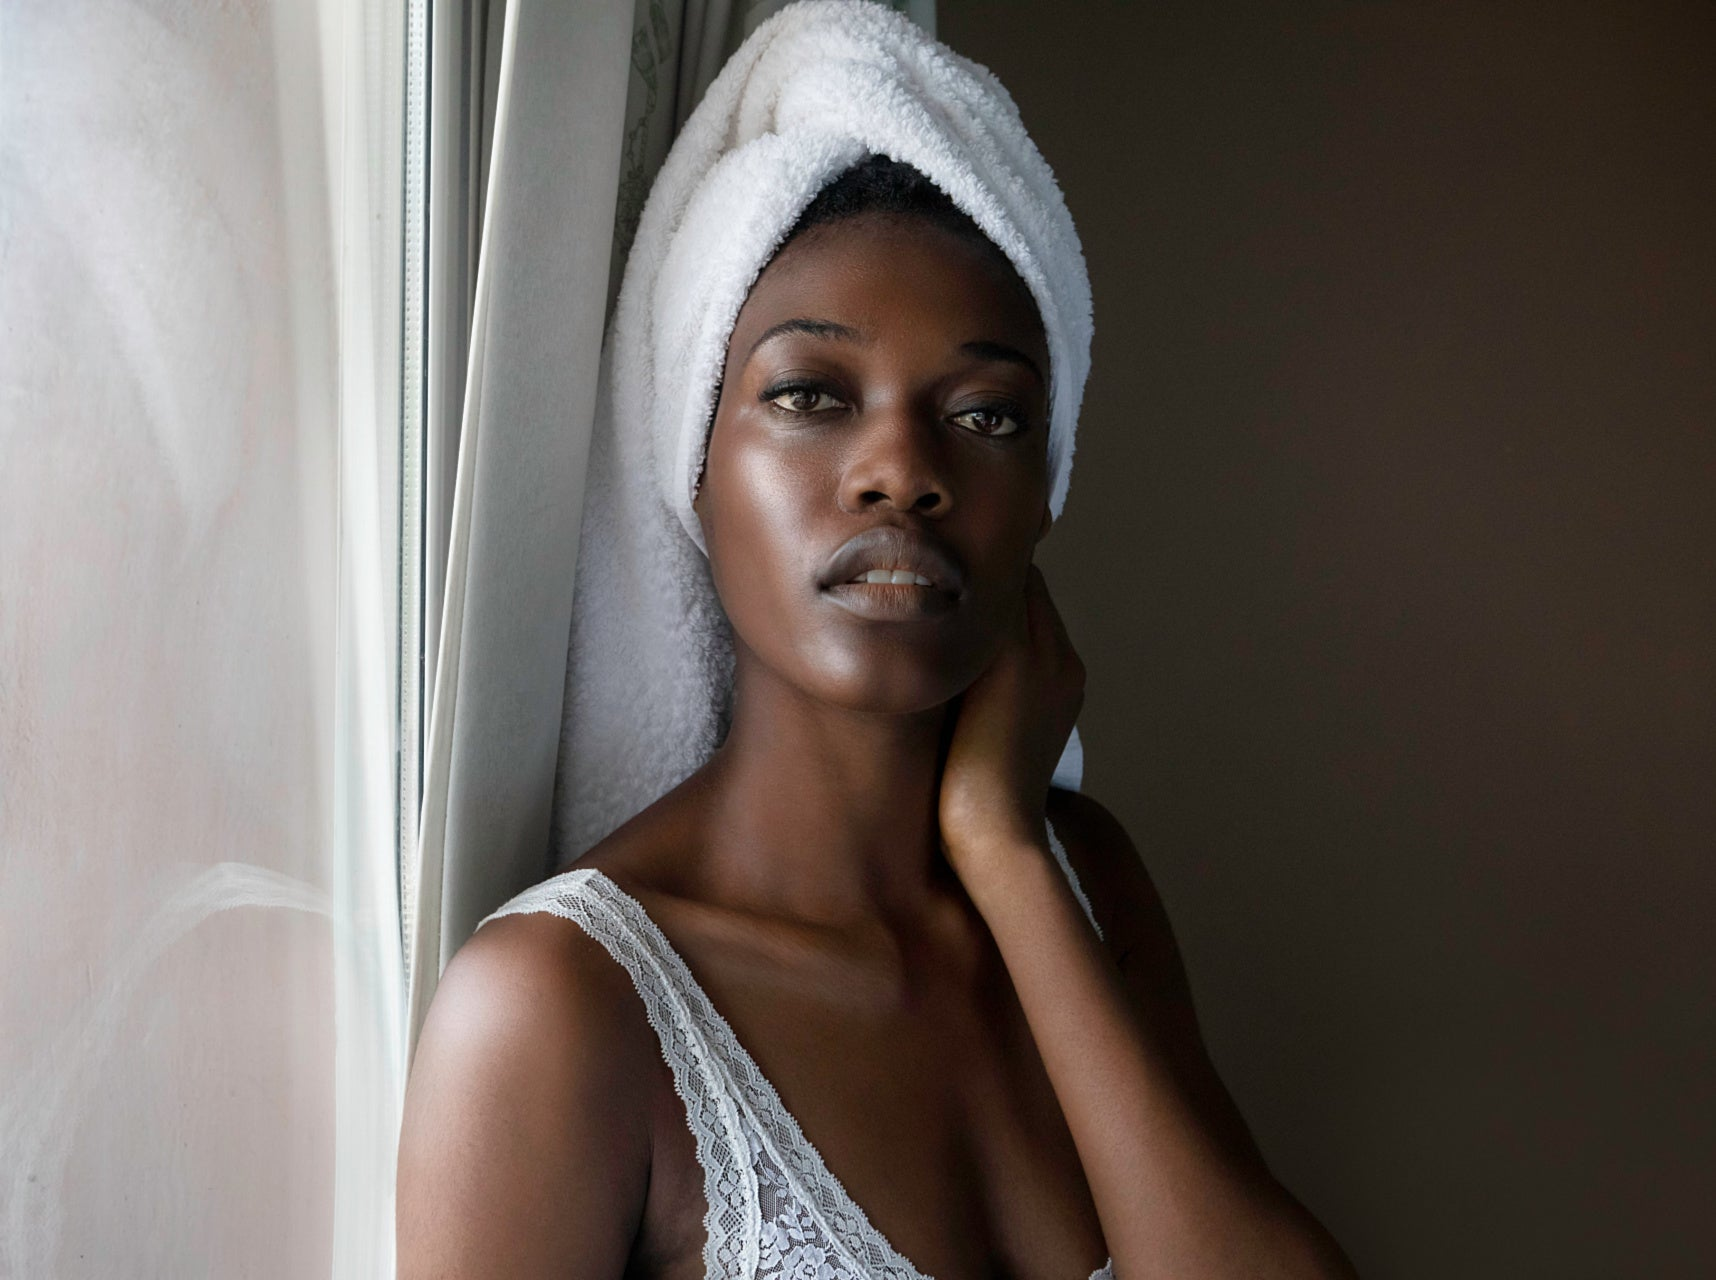 BLACK WOMAN WITH TOWL ON HEAD, CLEAR SKIN